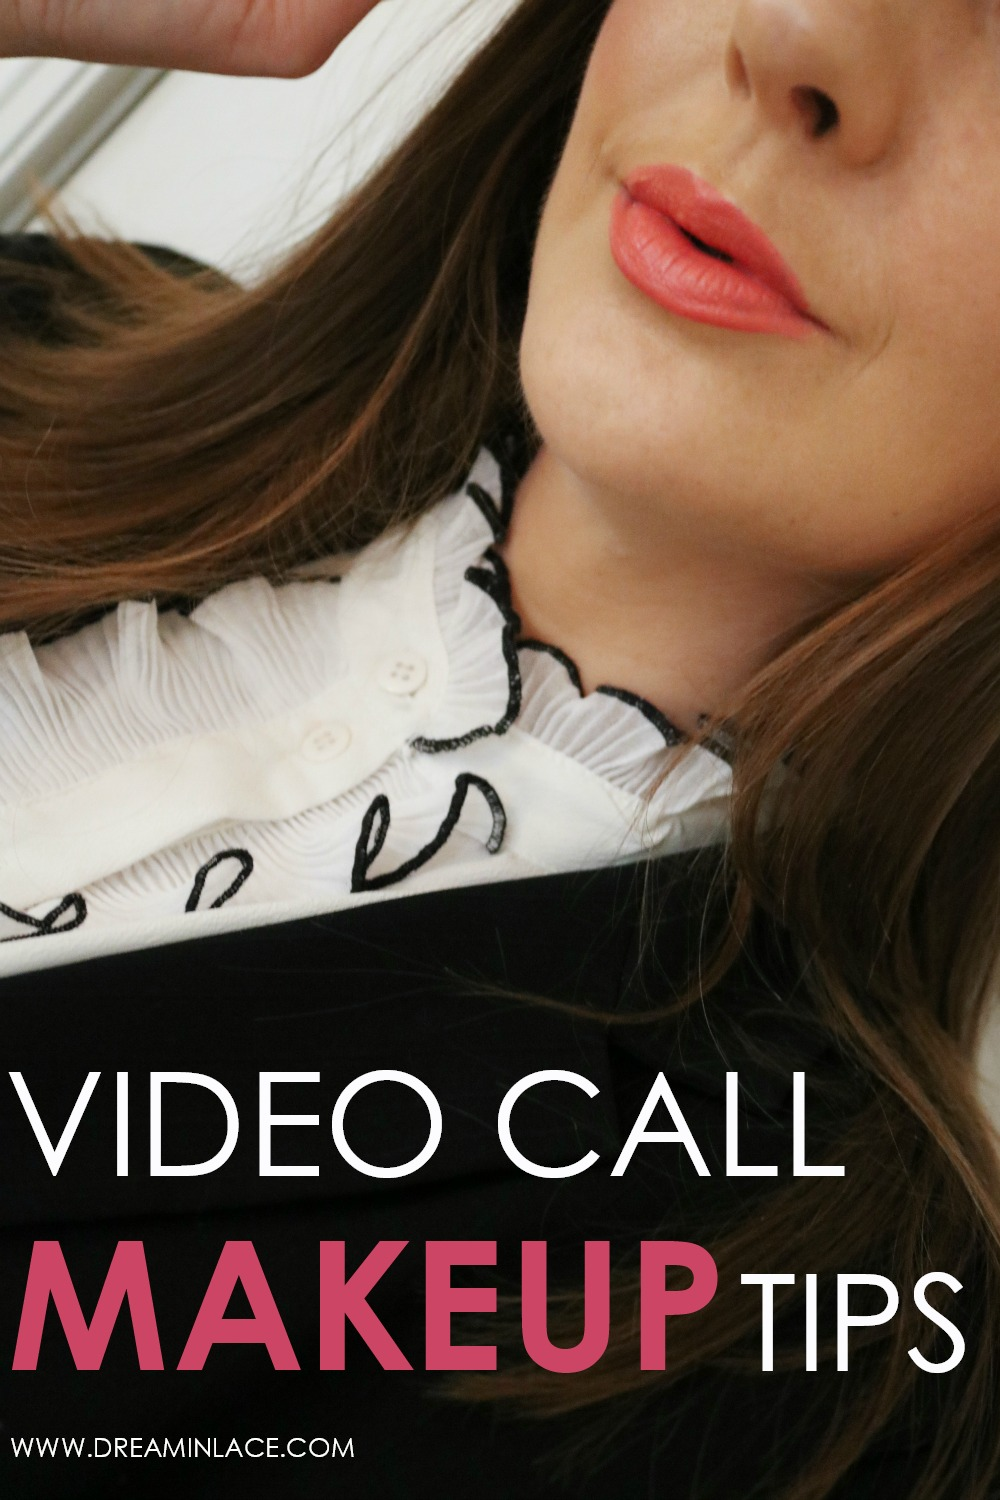 Video Call Makeup Tips to Ace that Zoom Meeting I DreaminLace.com